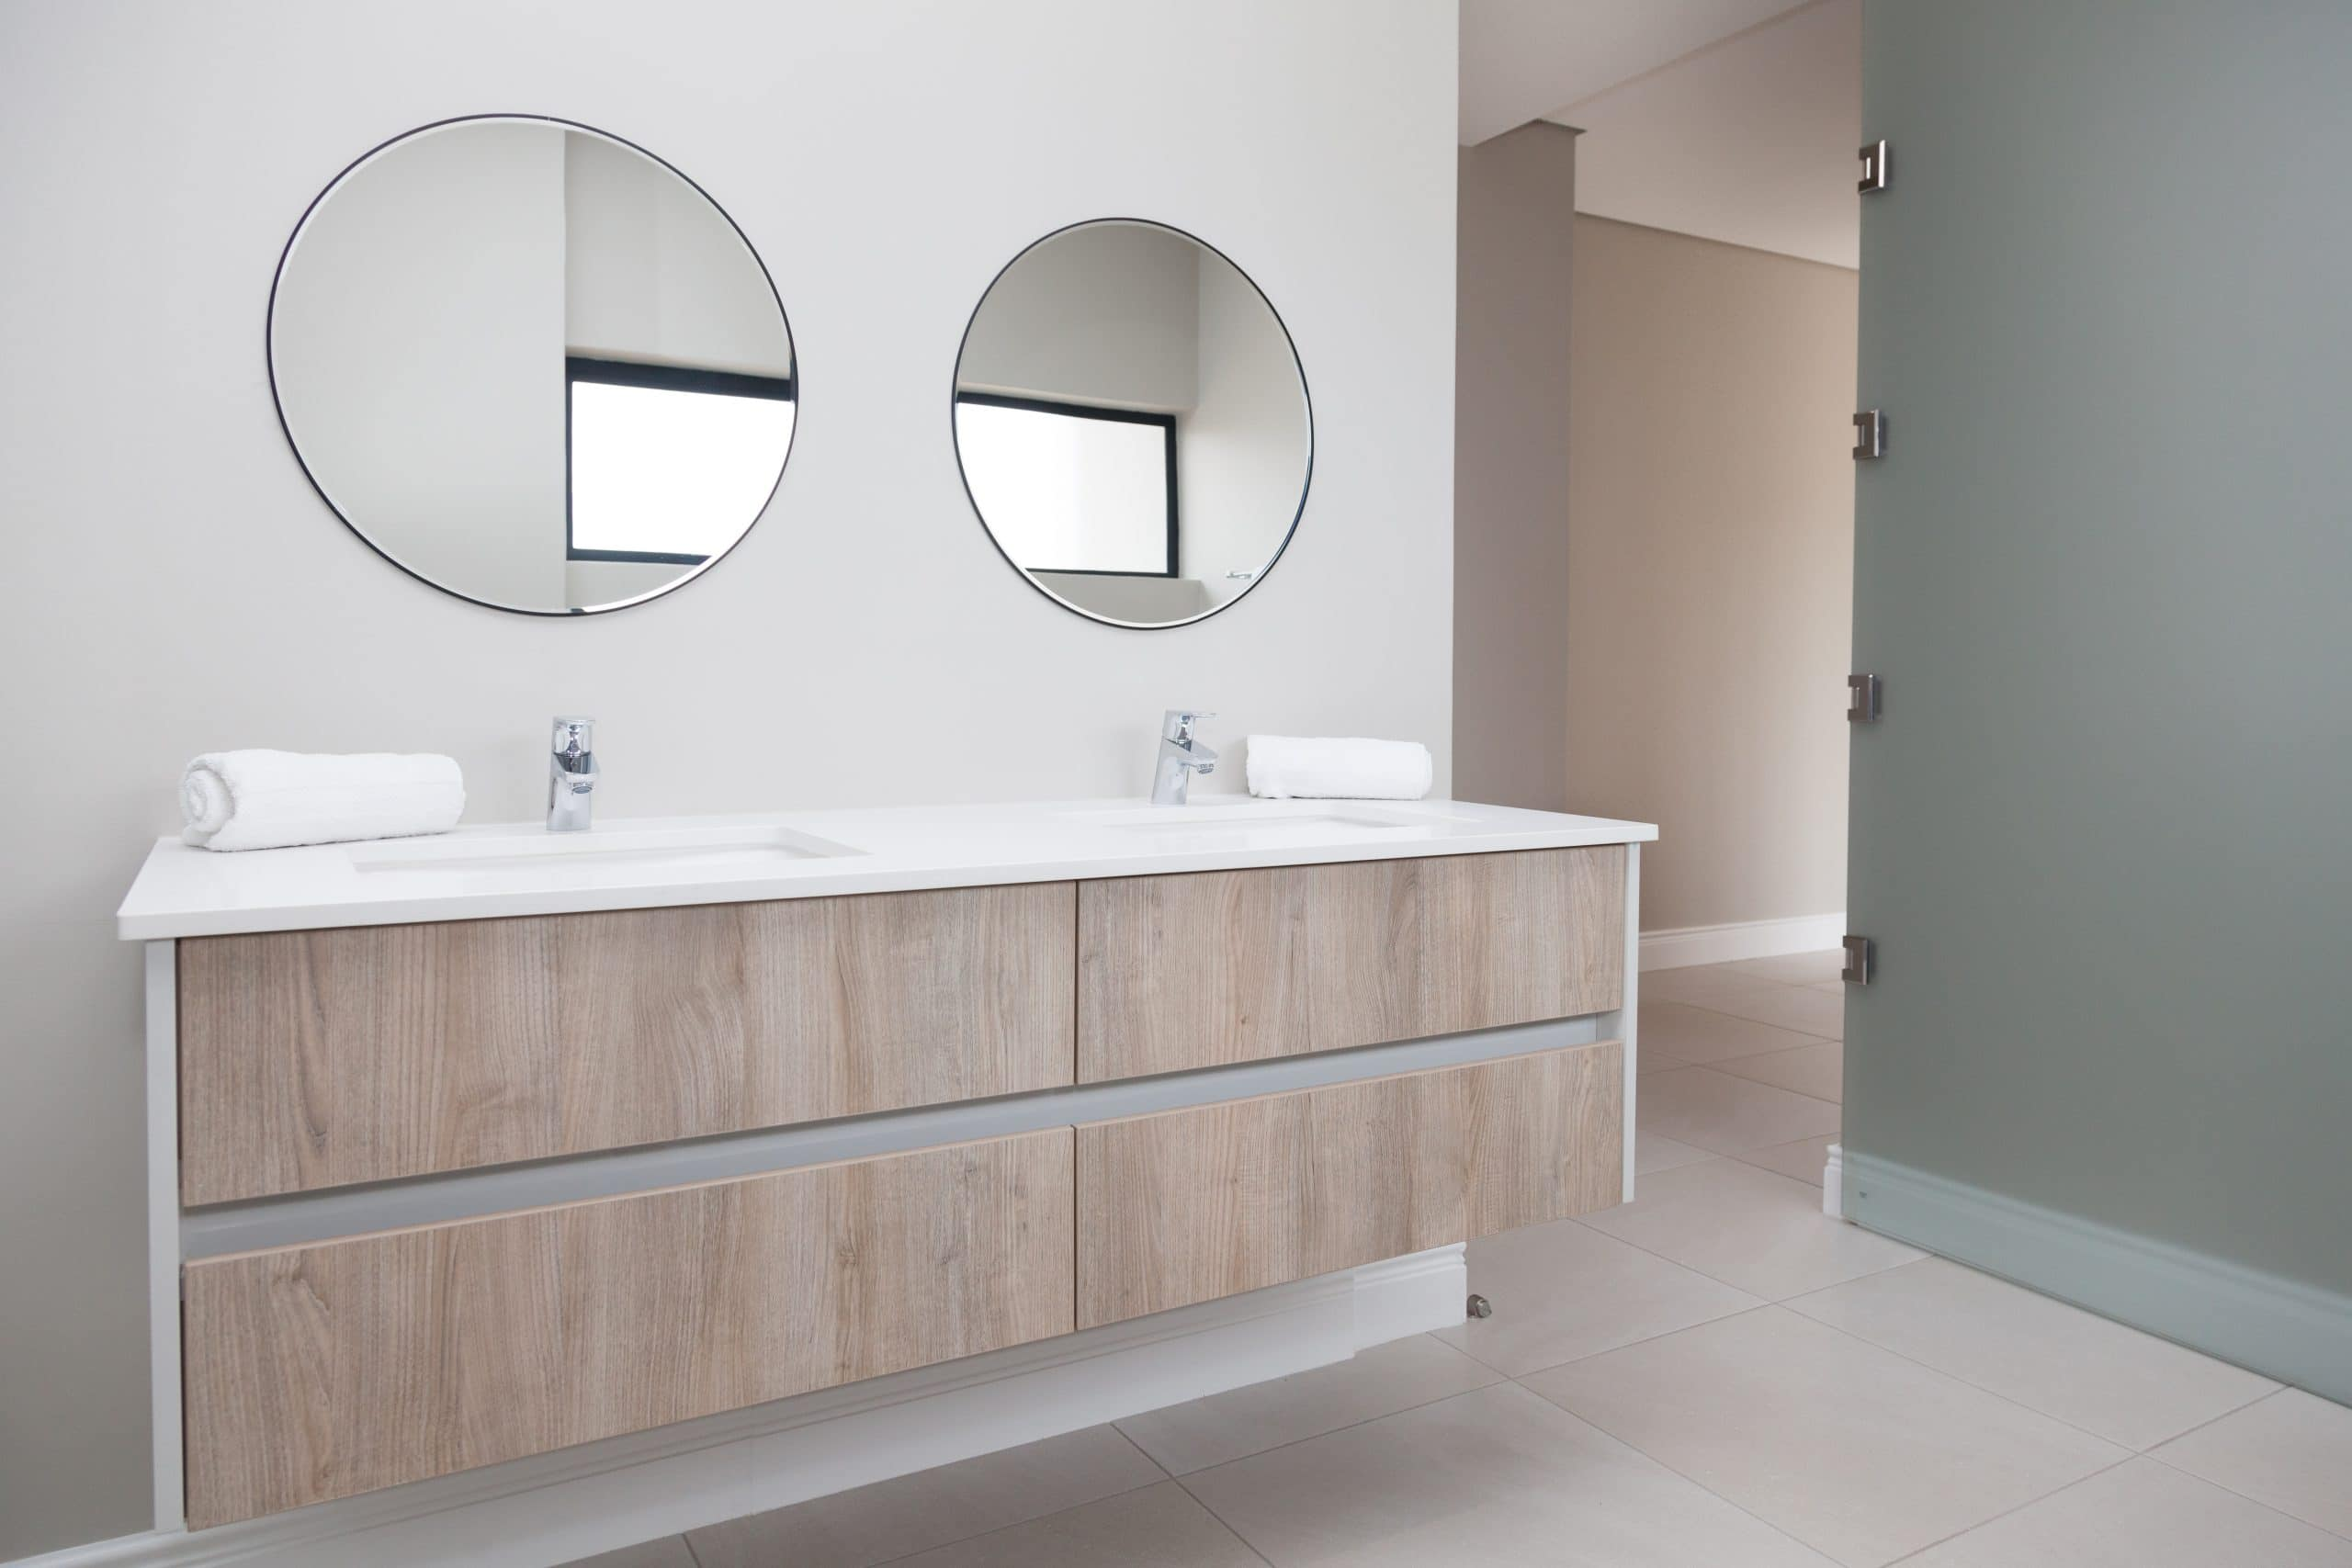 round bathroom mirrors with wooden vanity and glass bathroom door